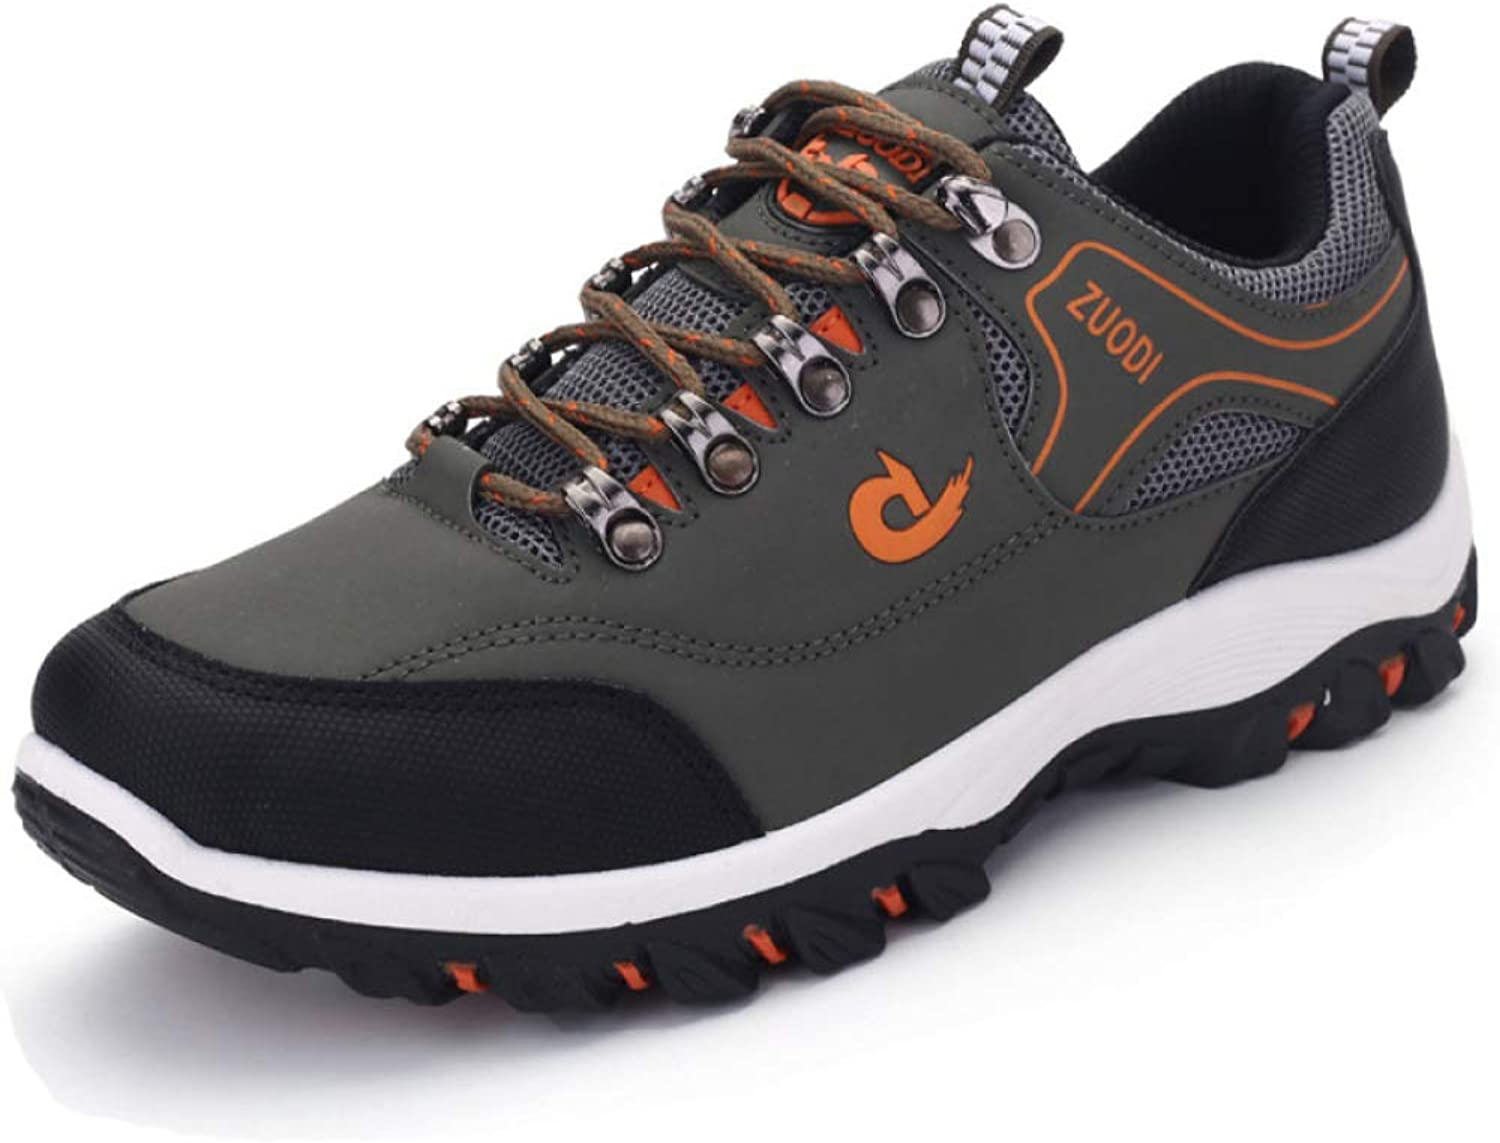 c83c820e8a4 DSFGHE Hiking shoes Waterproof Gymnastics Training Sneakers Low to ...